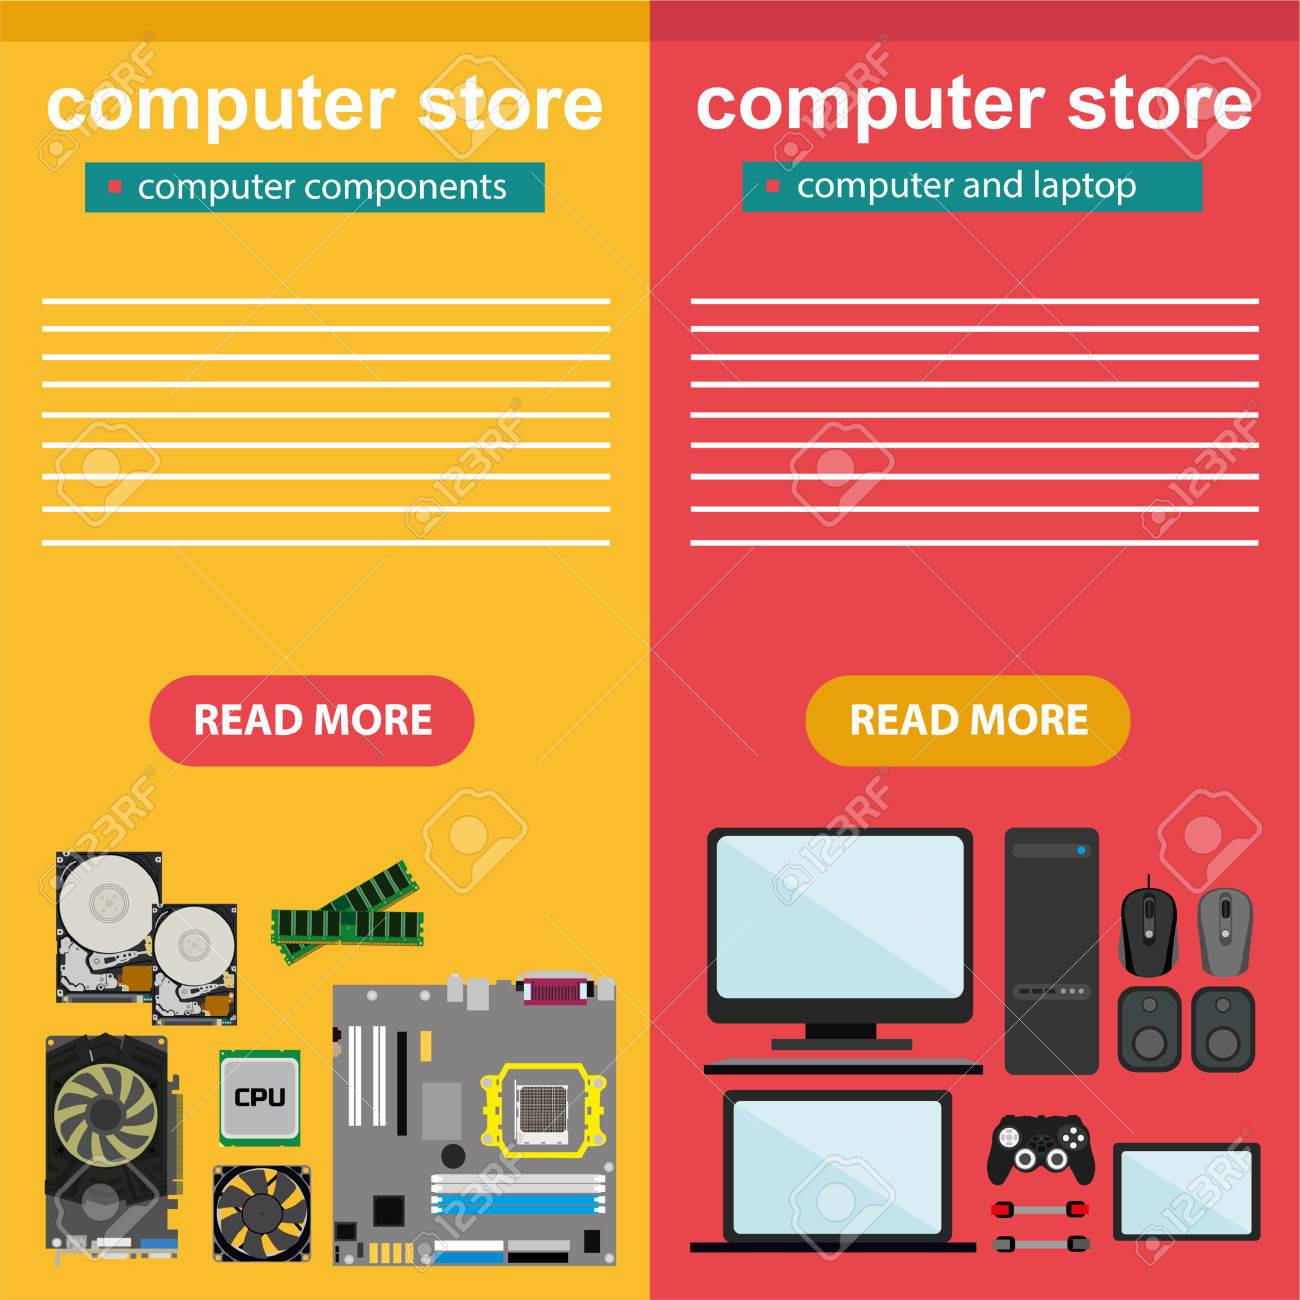 Flat design concept of computer store, sale of computers, laptops,